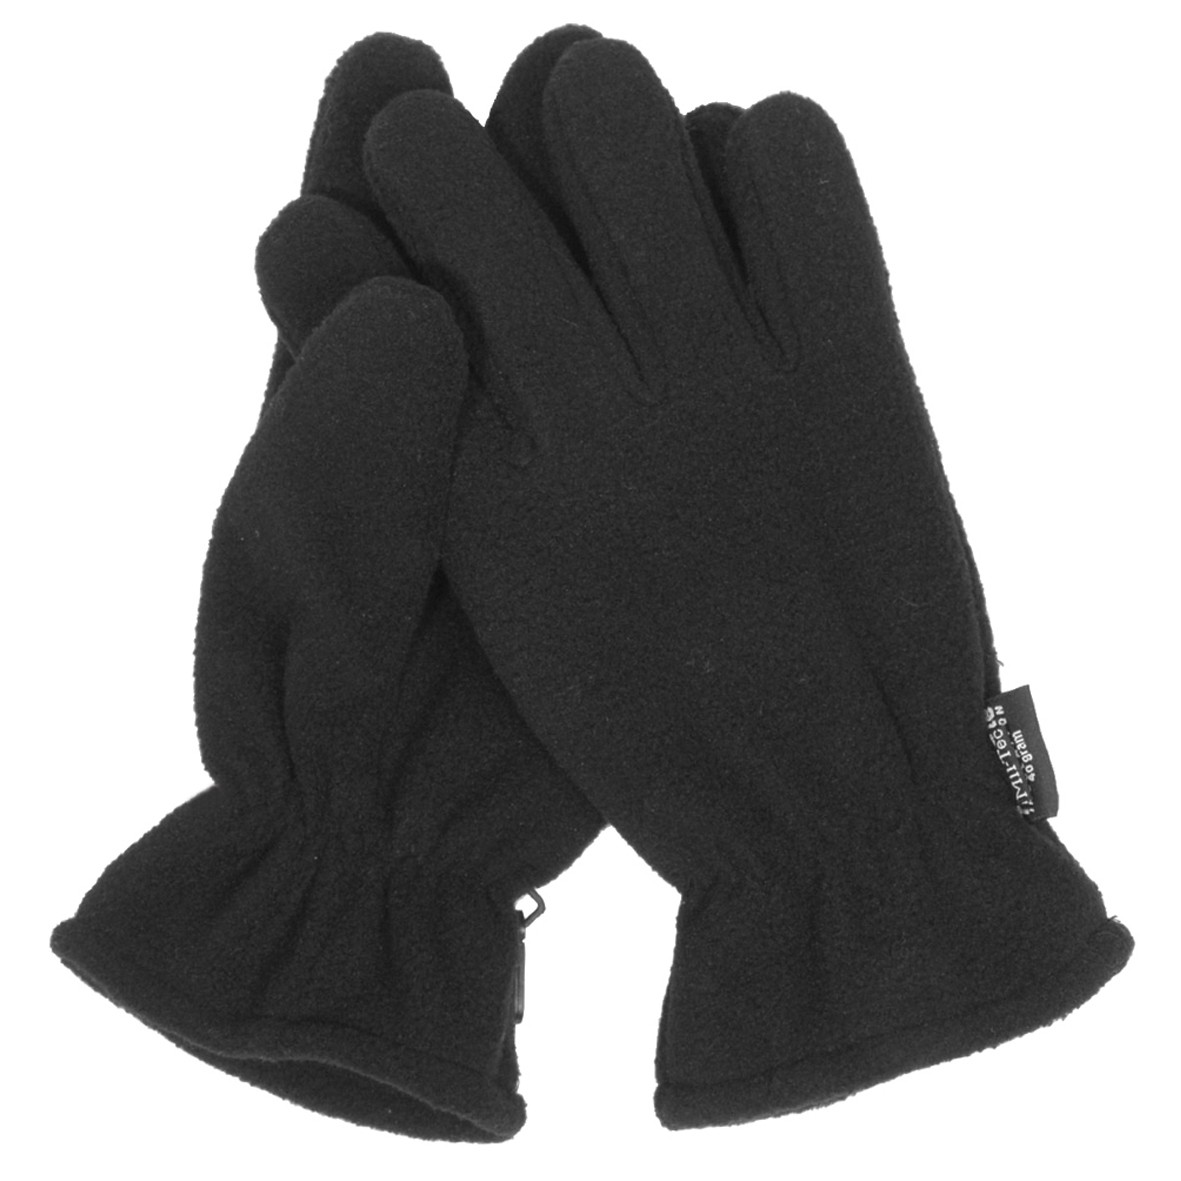 Fingerhandschuhe Fleece Thinsulate, schwarz